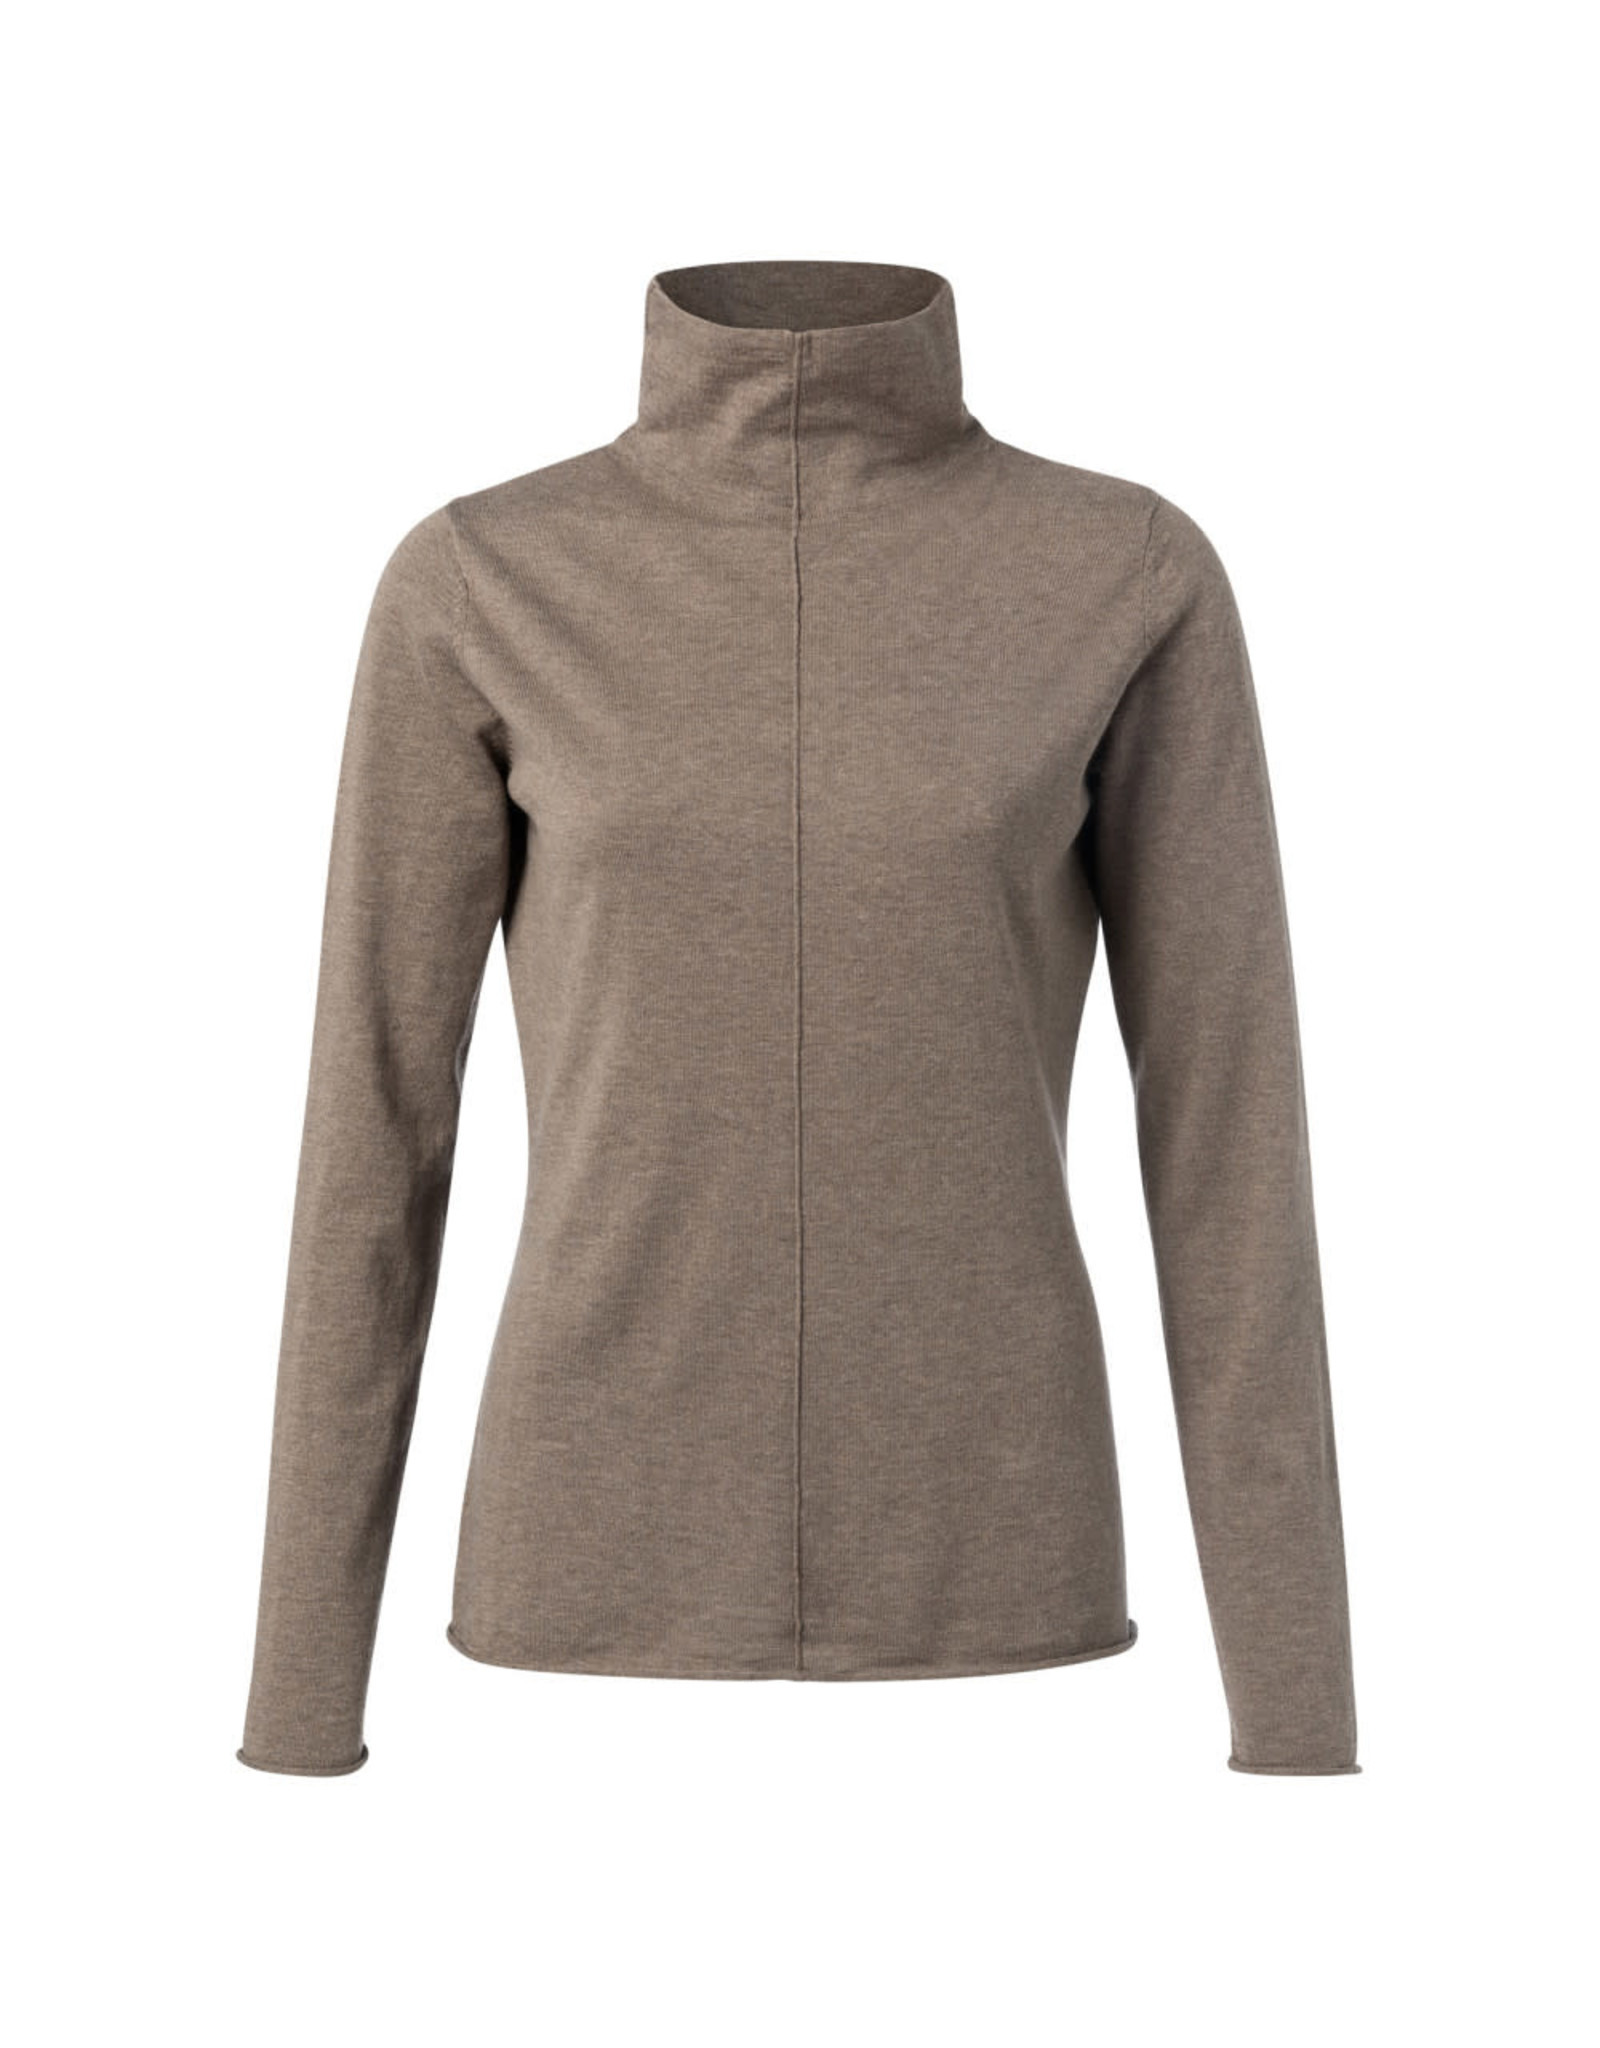 Yaya YAYA Cotton blend high neck sweater with seam at front Chocolate melange